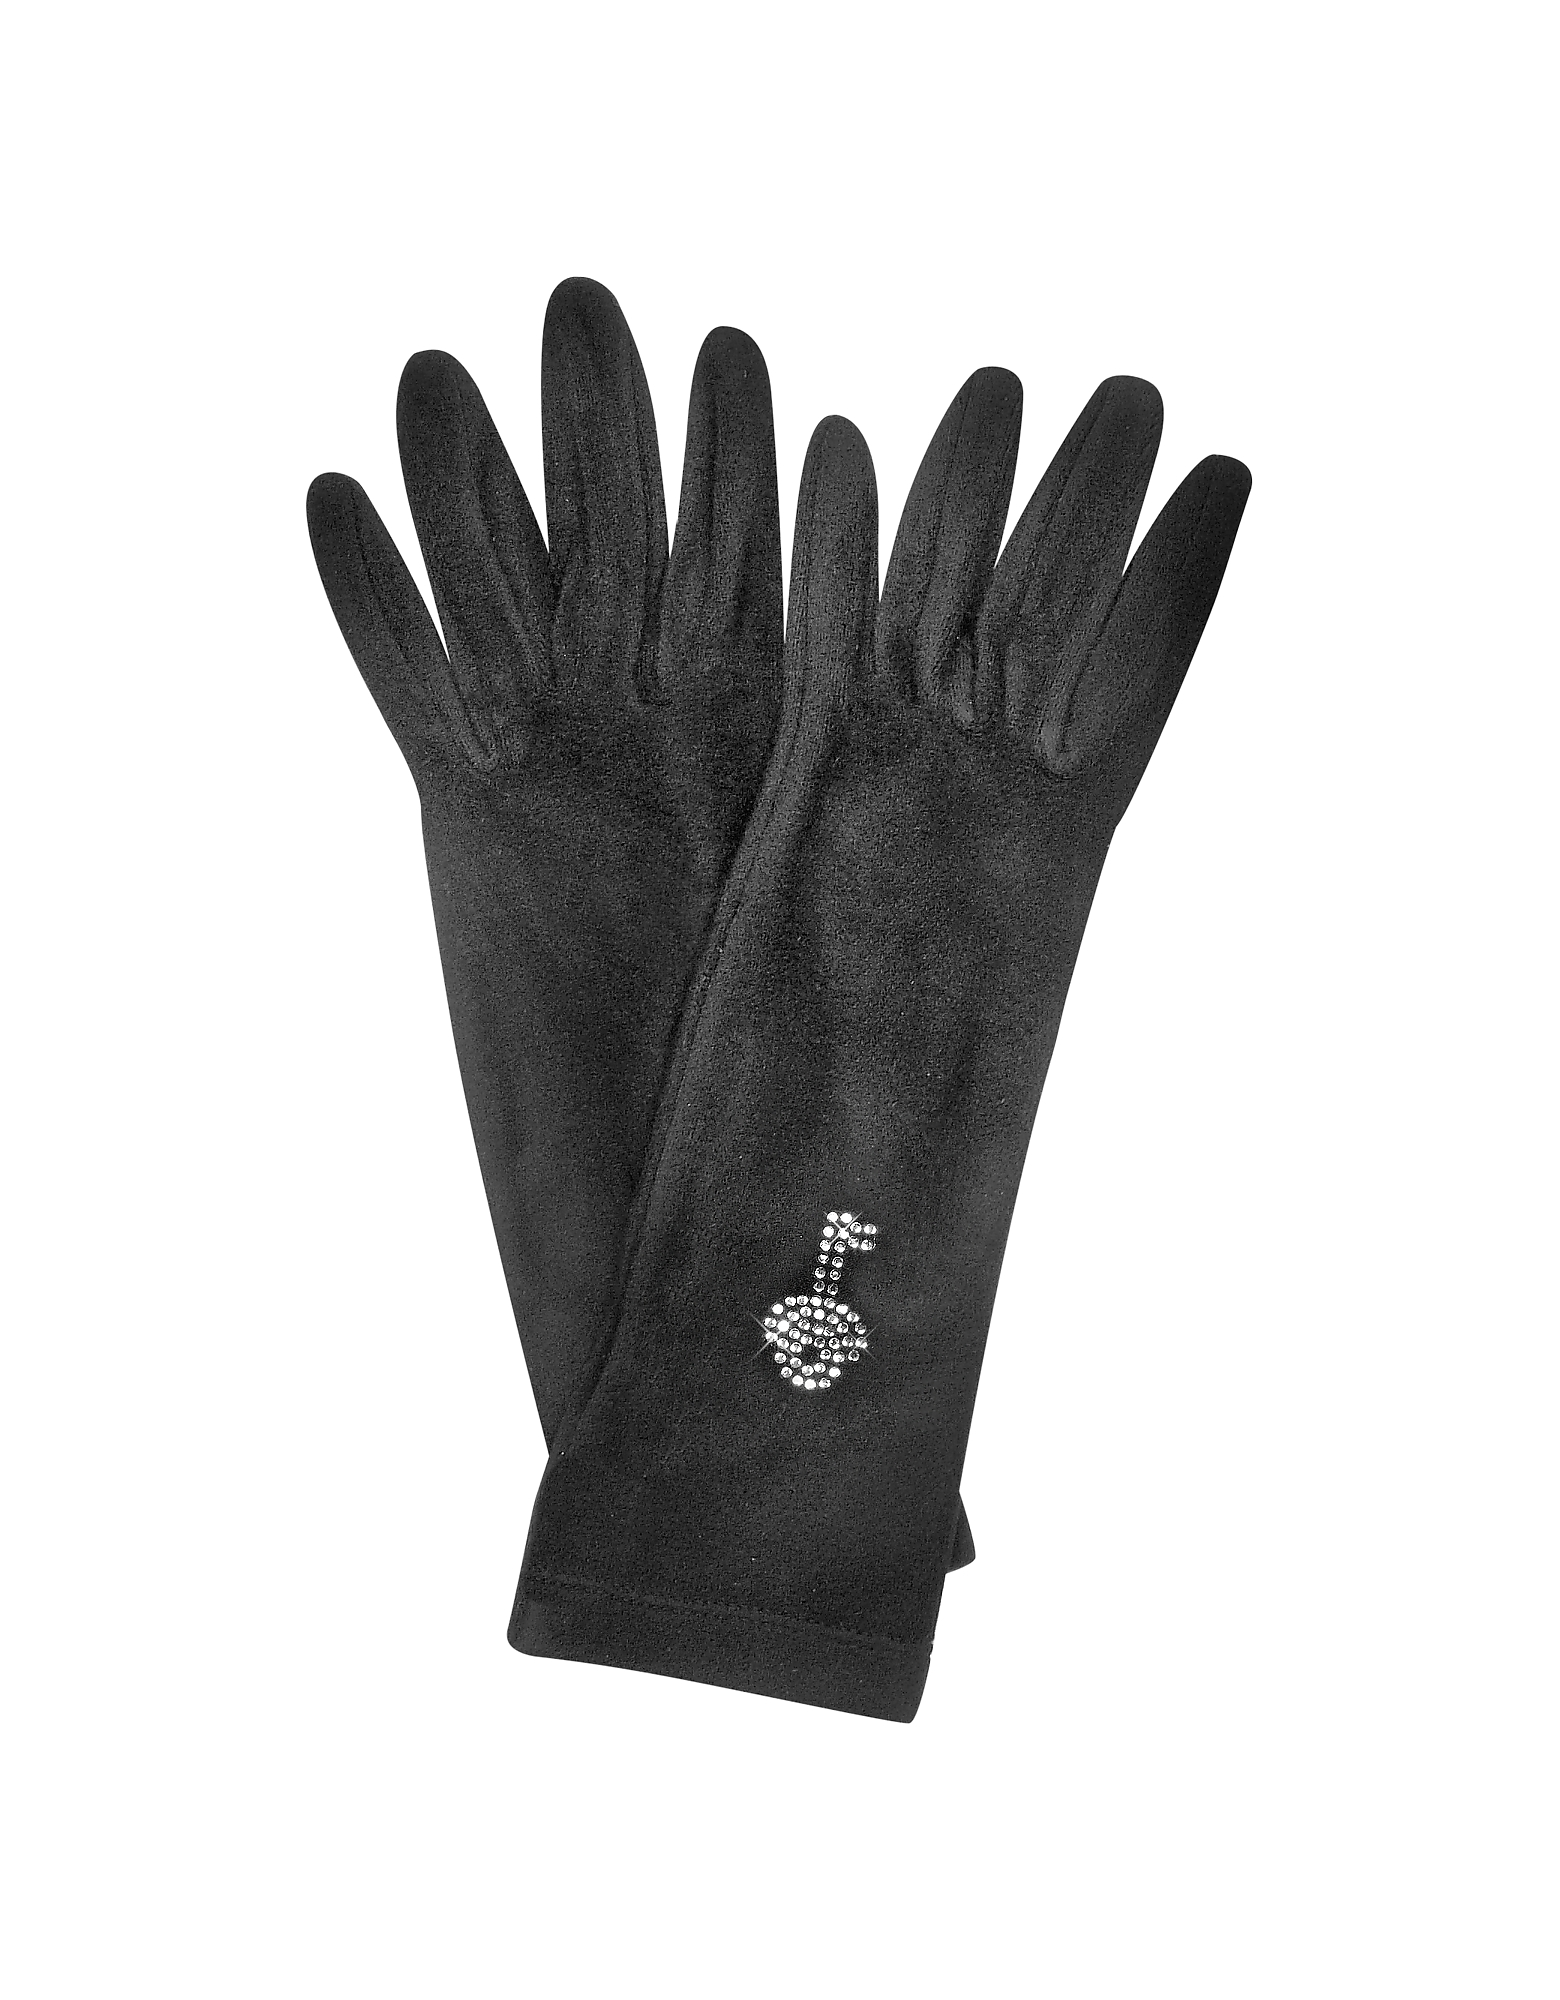 Forzieri Women's Gloves, Rhinestone Black Gloves